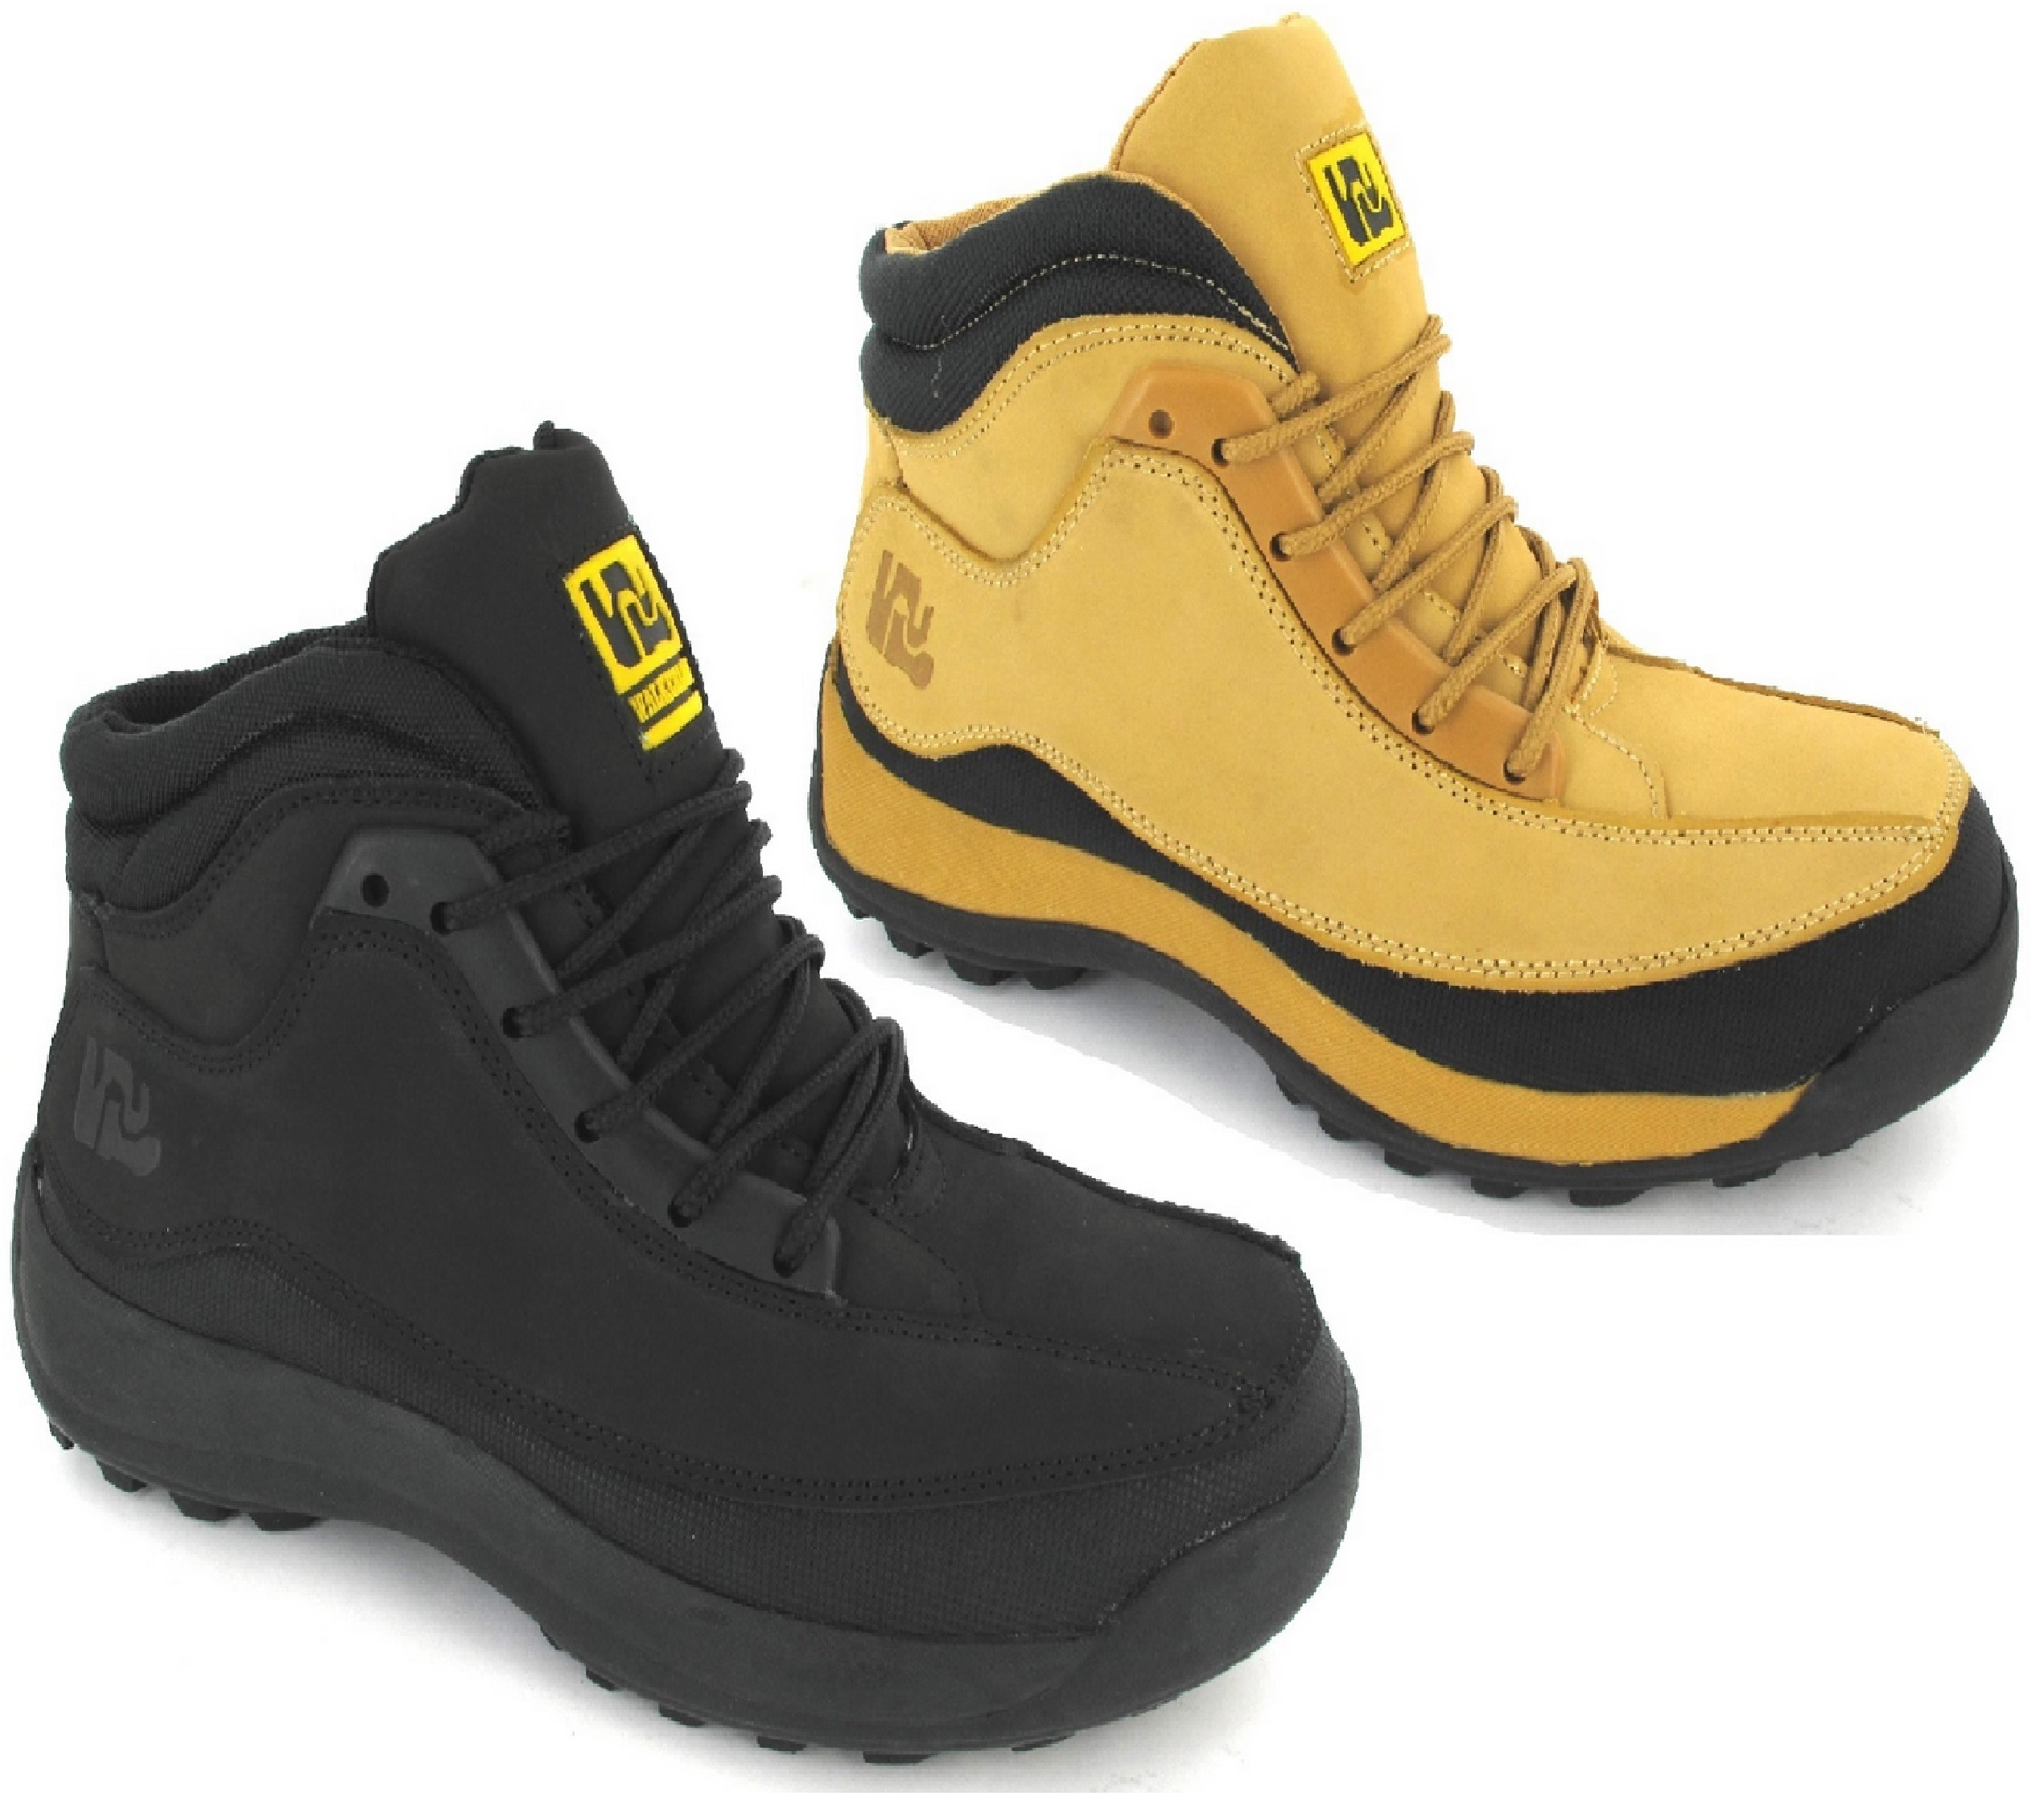 0fd06f9c4a Sentinel NEW MENS LEATHER SAFETY BOOTS TRAINERS STEEL TOE CAP ANKLE WORK  SHOES SIZE 3-13